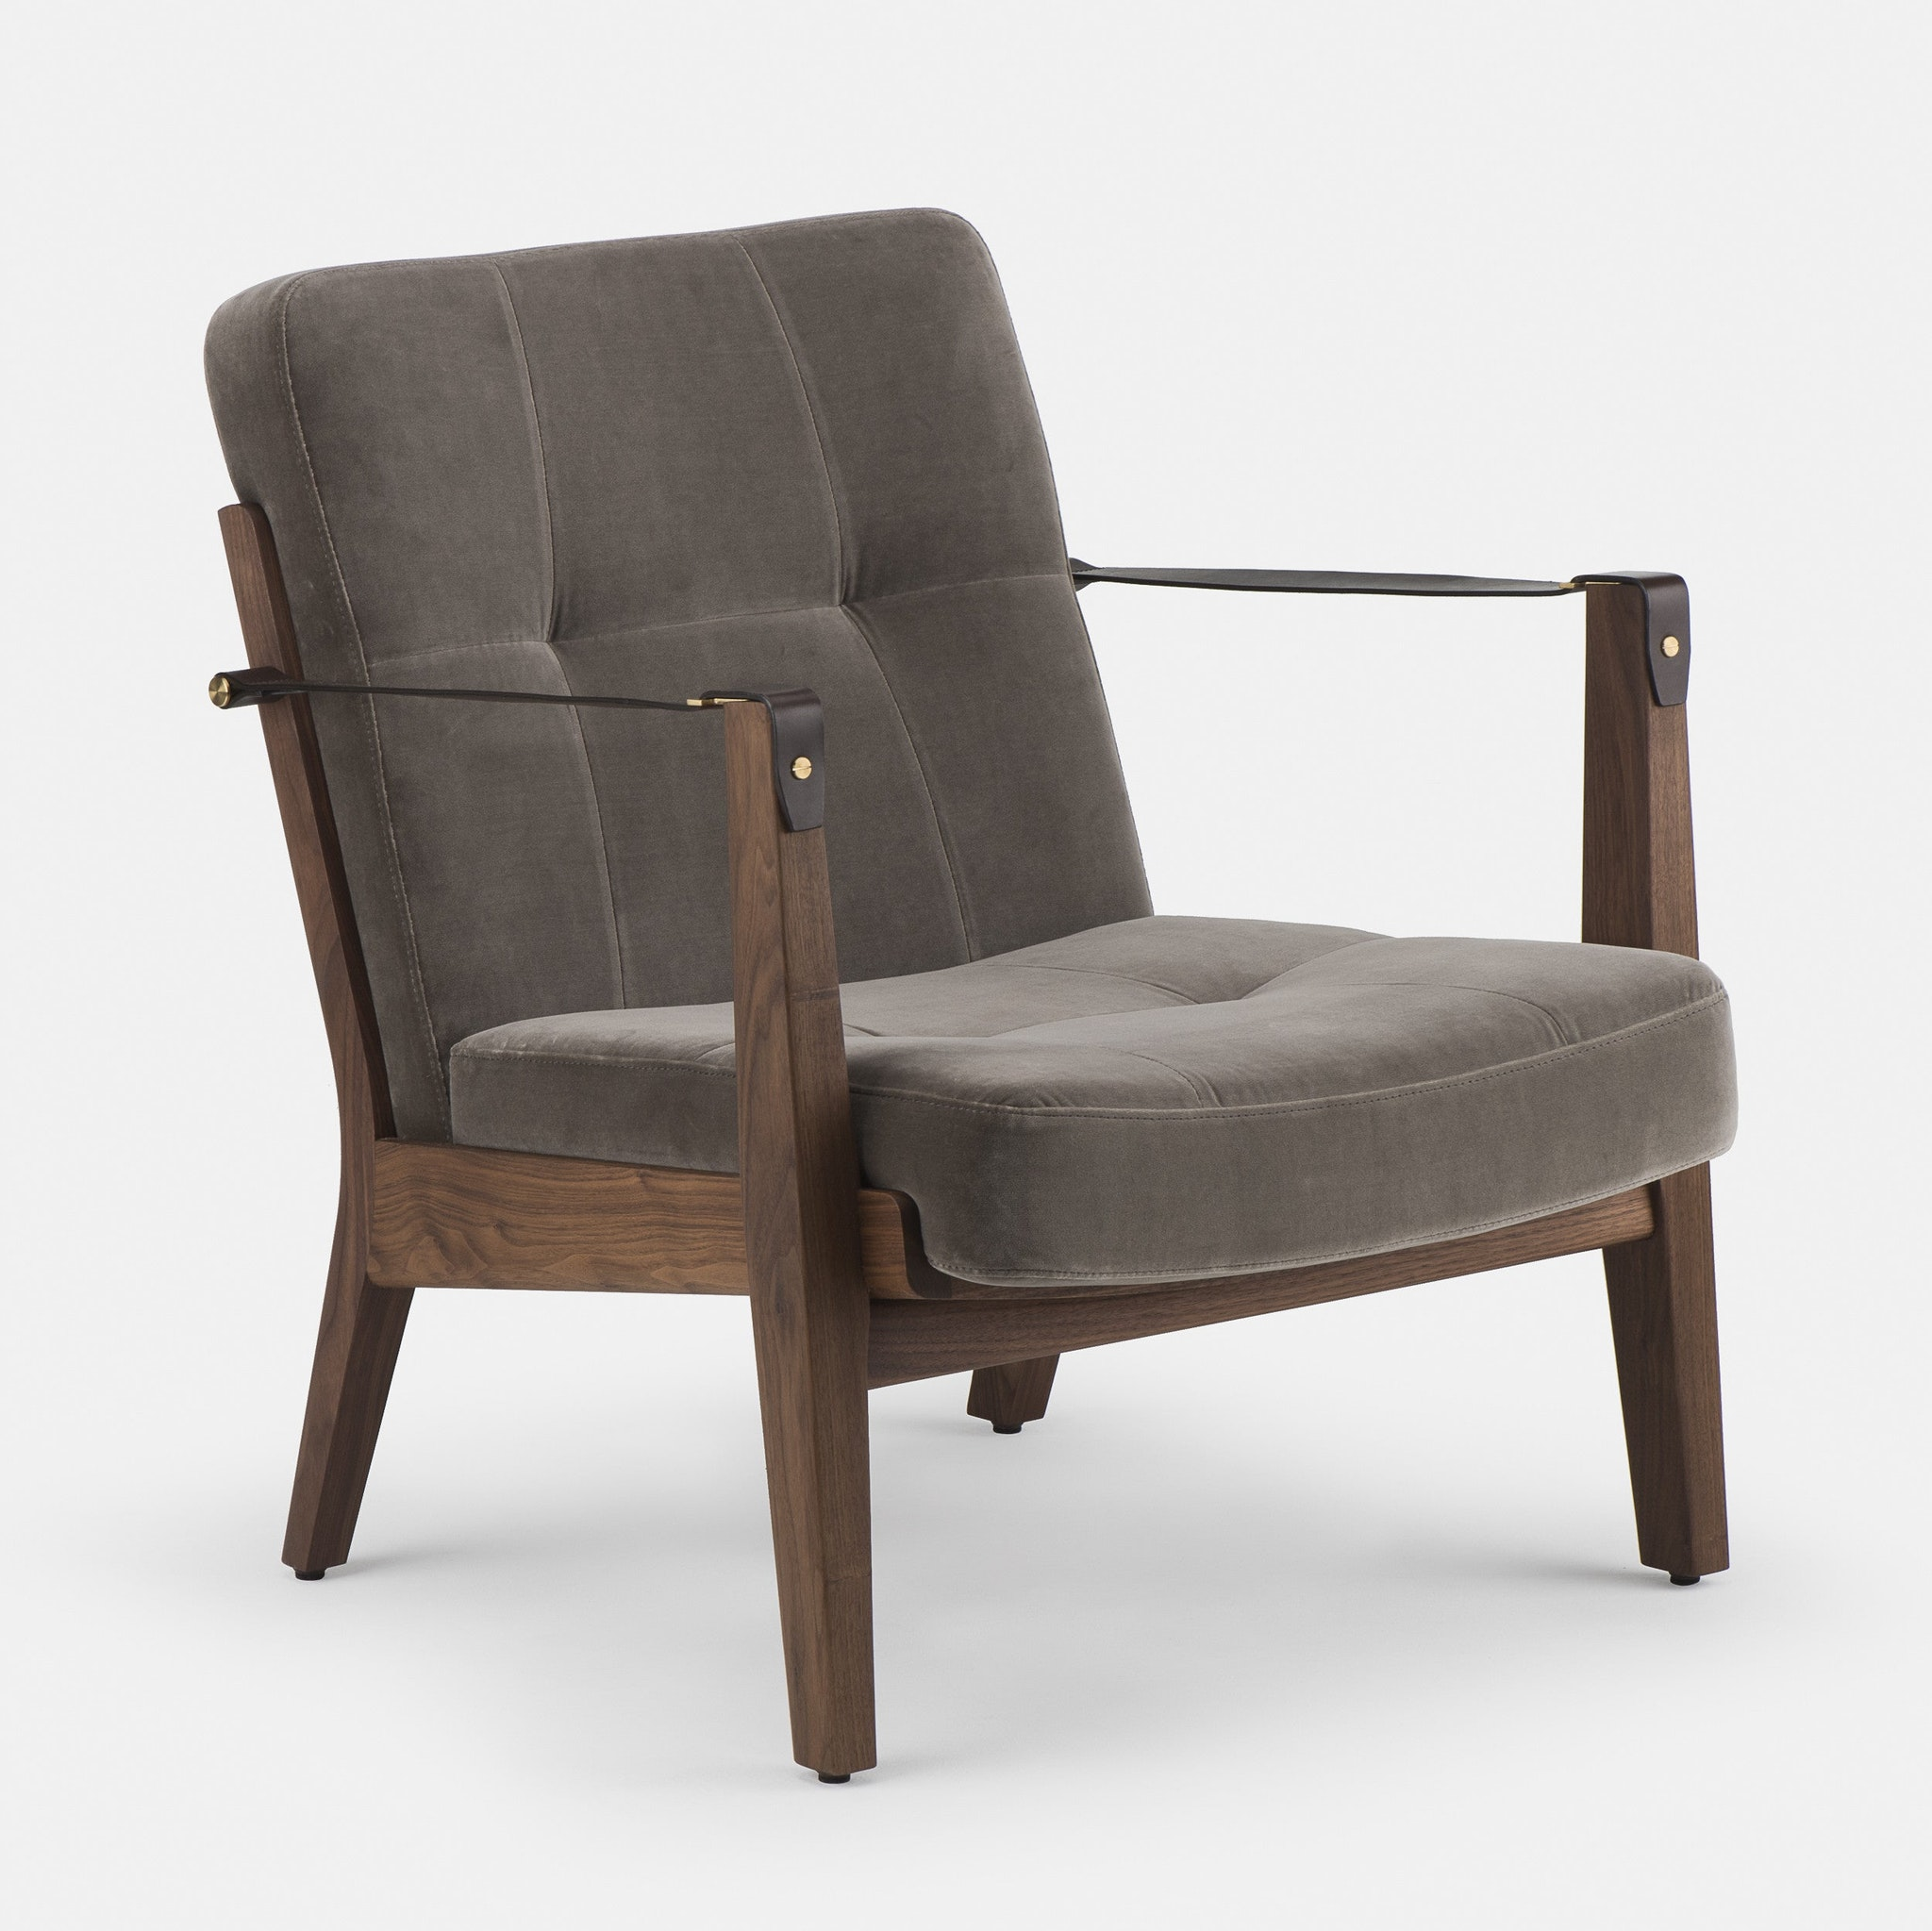 Capo Lounge Armchair by Neri&Hu